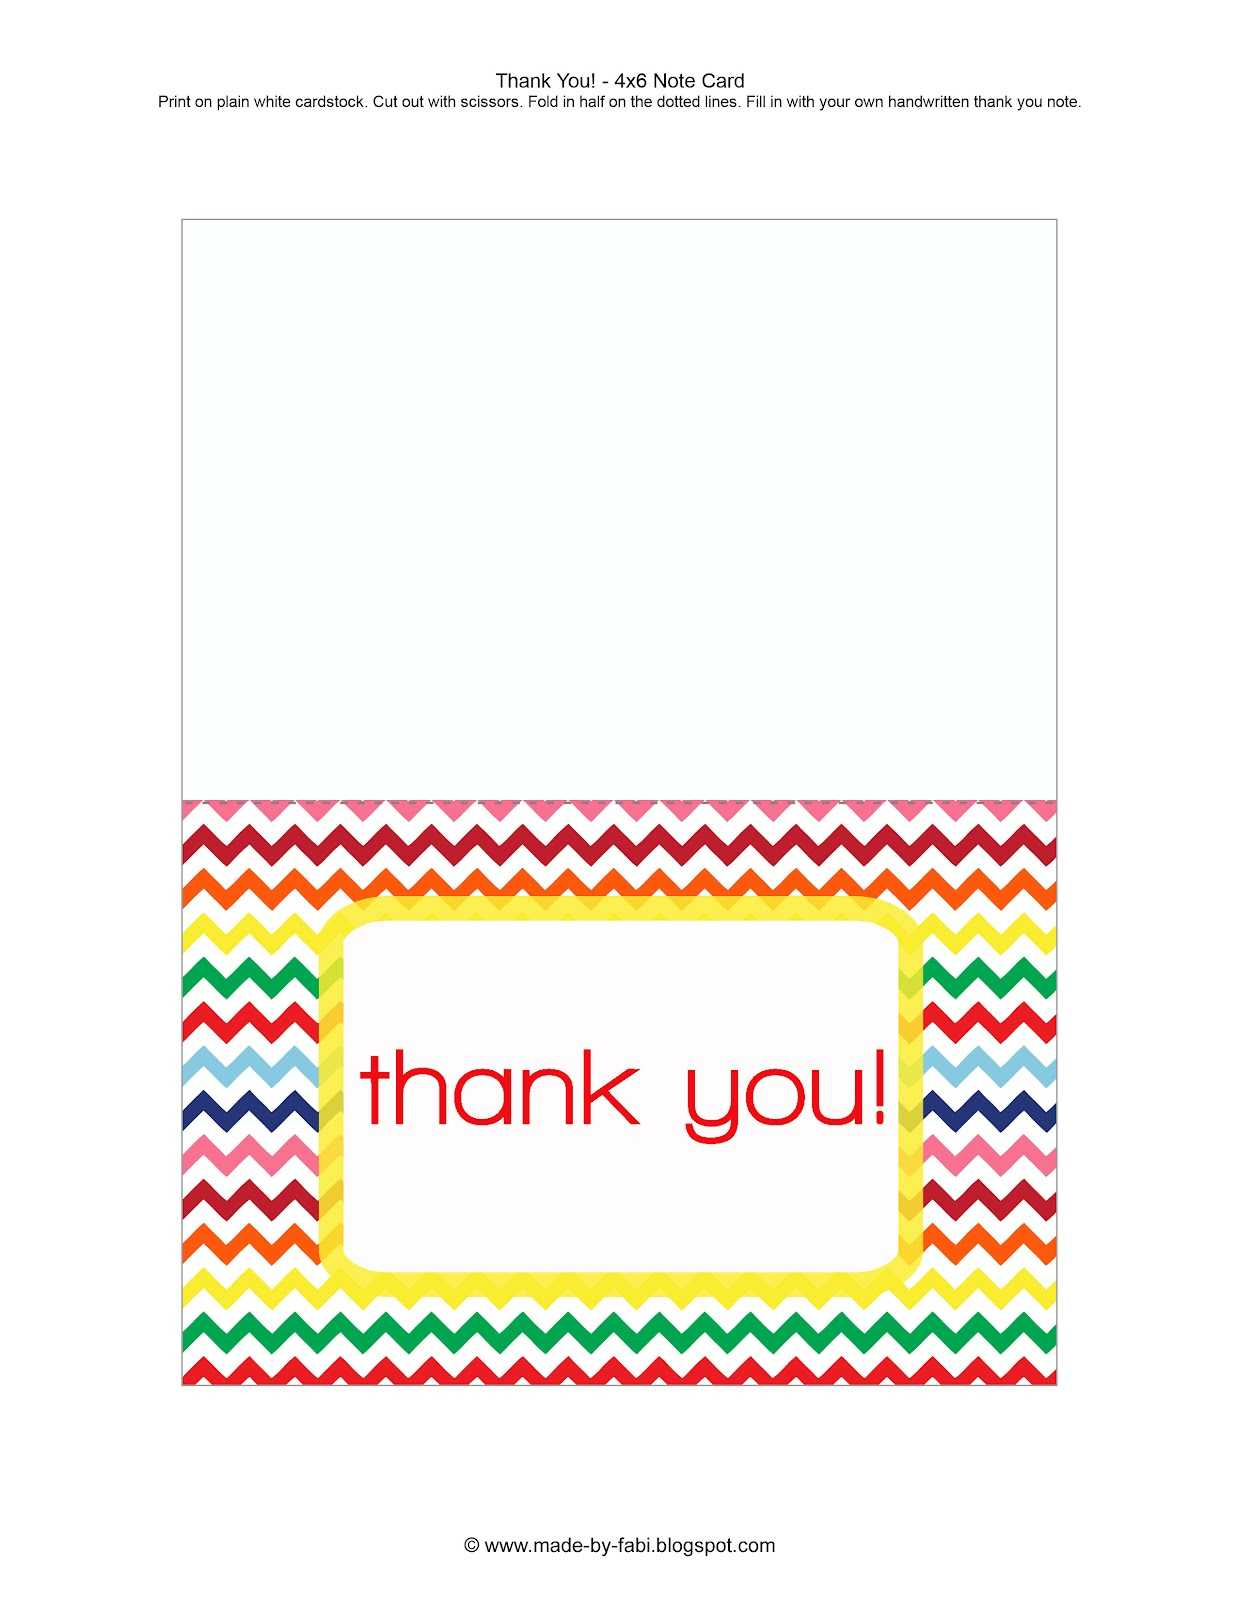 015 Template Ideas Thank You Note Free Phenomenal Word Card intended for Thank You Note Cards Template